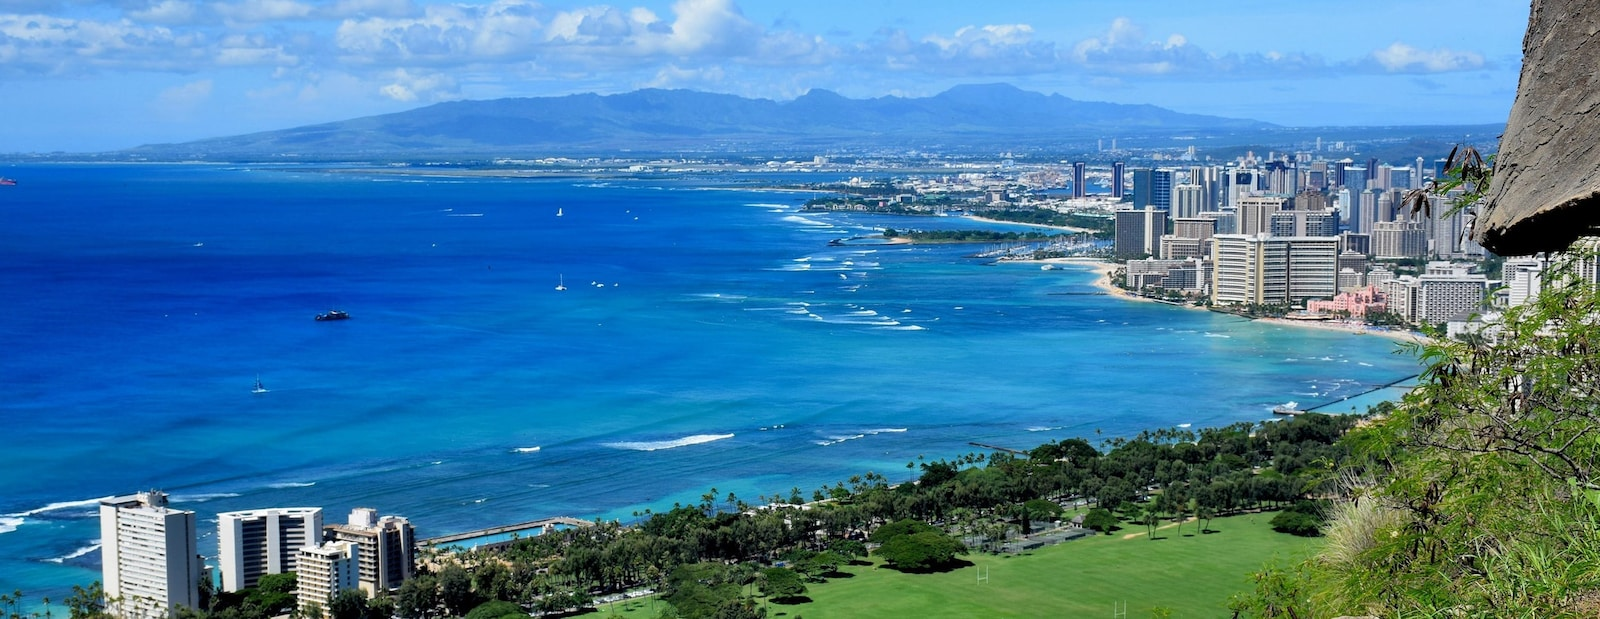 Vacation rentals in Marine Corps Base Hawaii